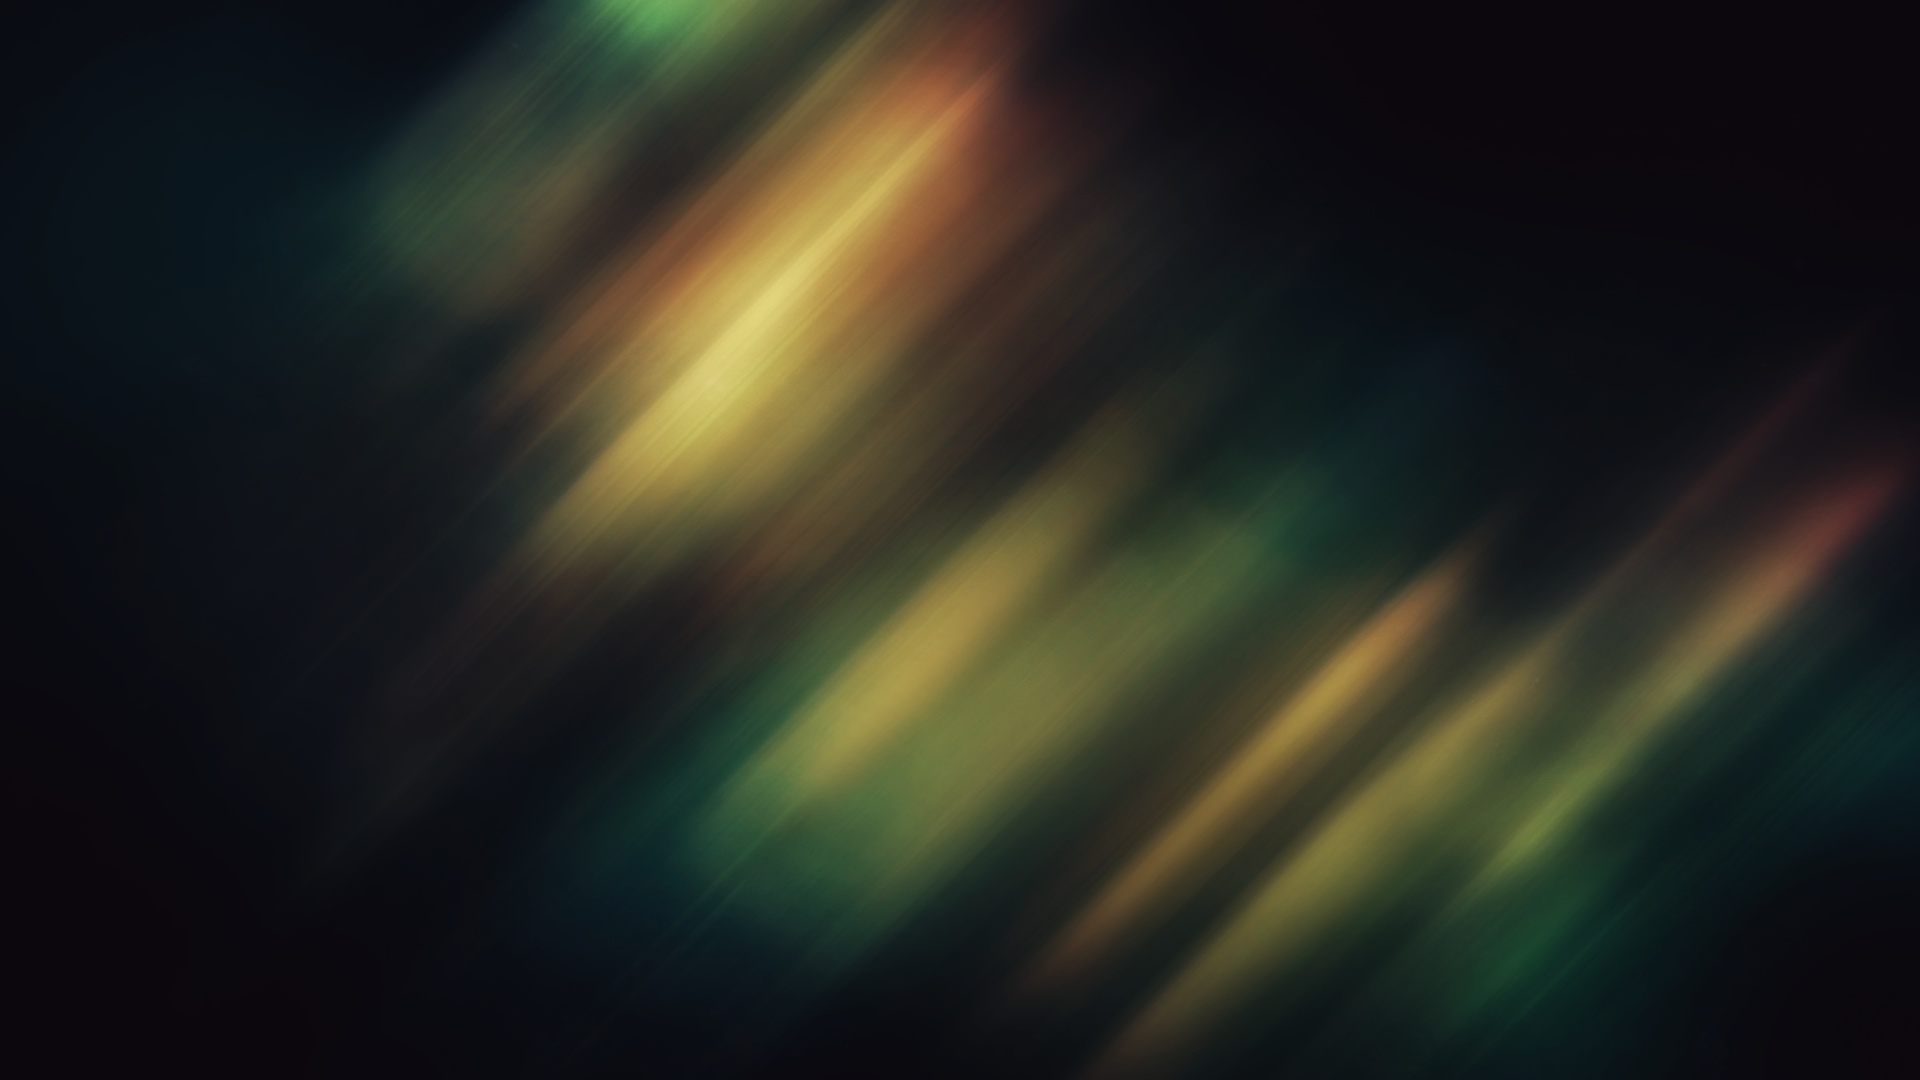 Amazing Blurry Wallpaper